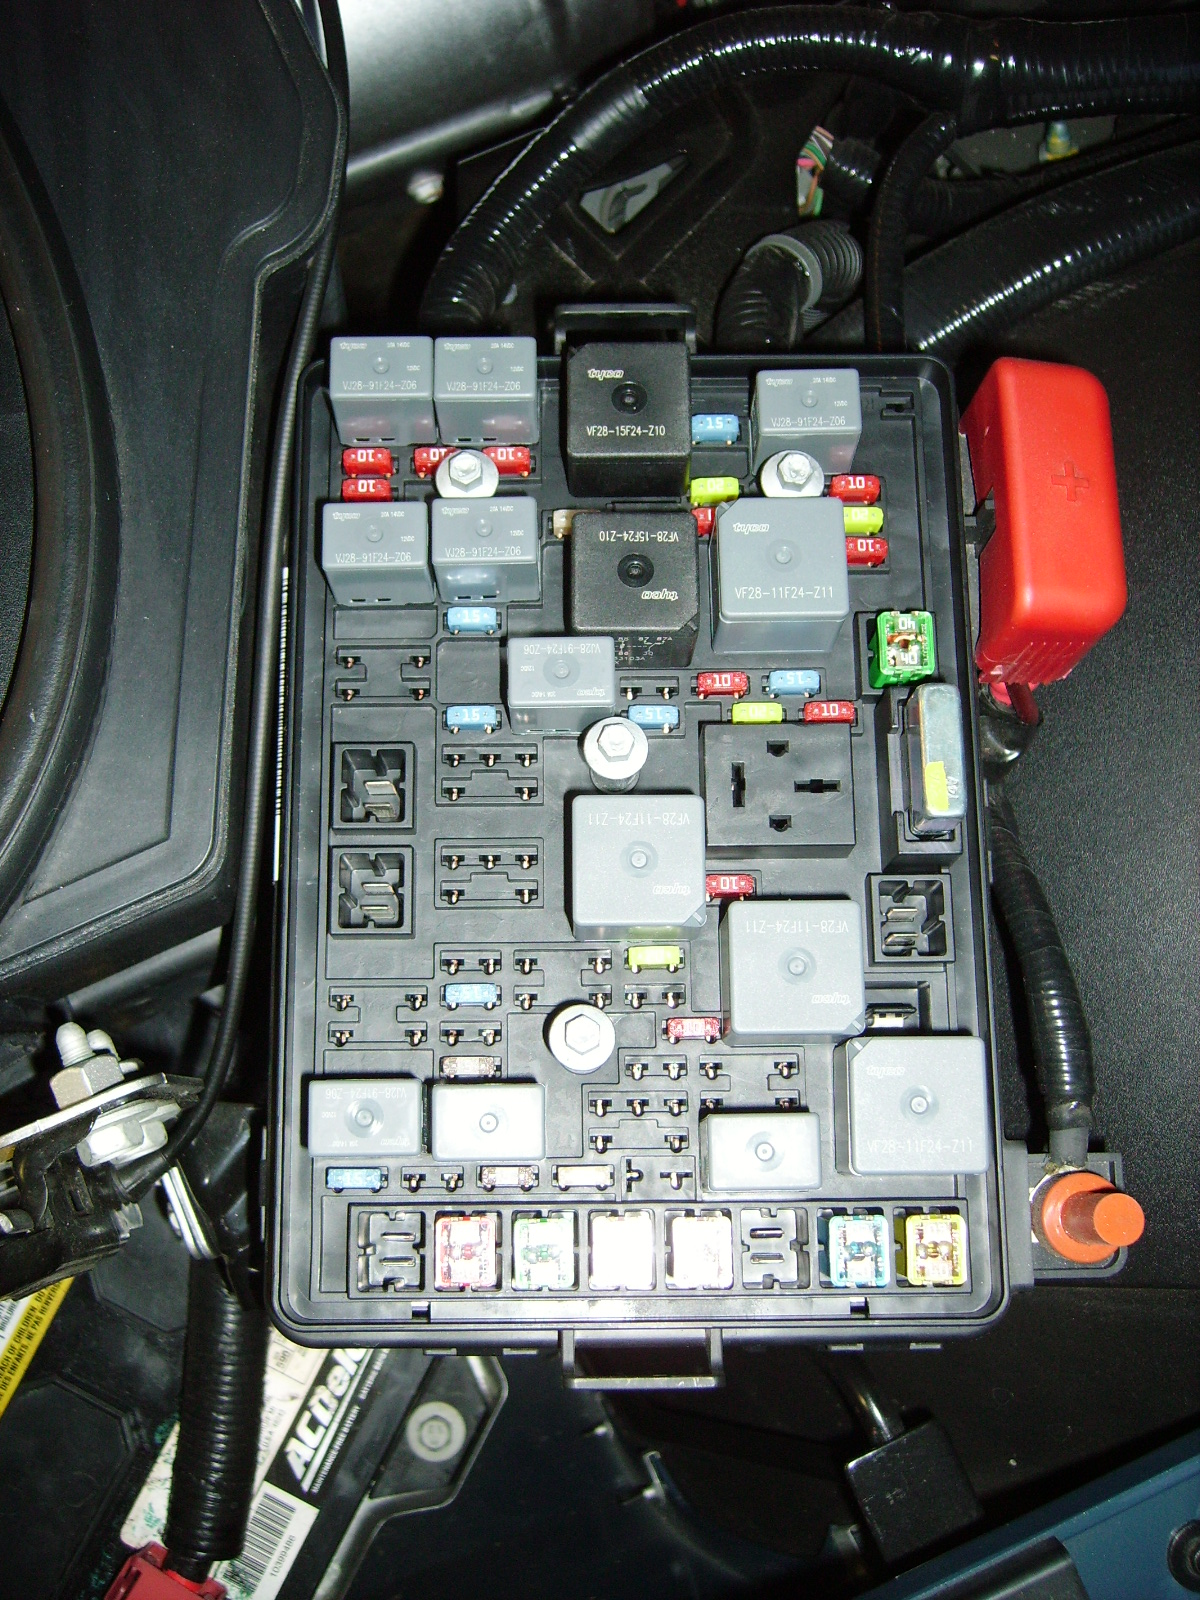 D Reverse Light Out Fuse Box Under Hood